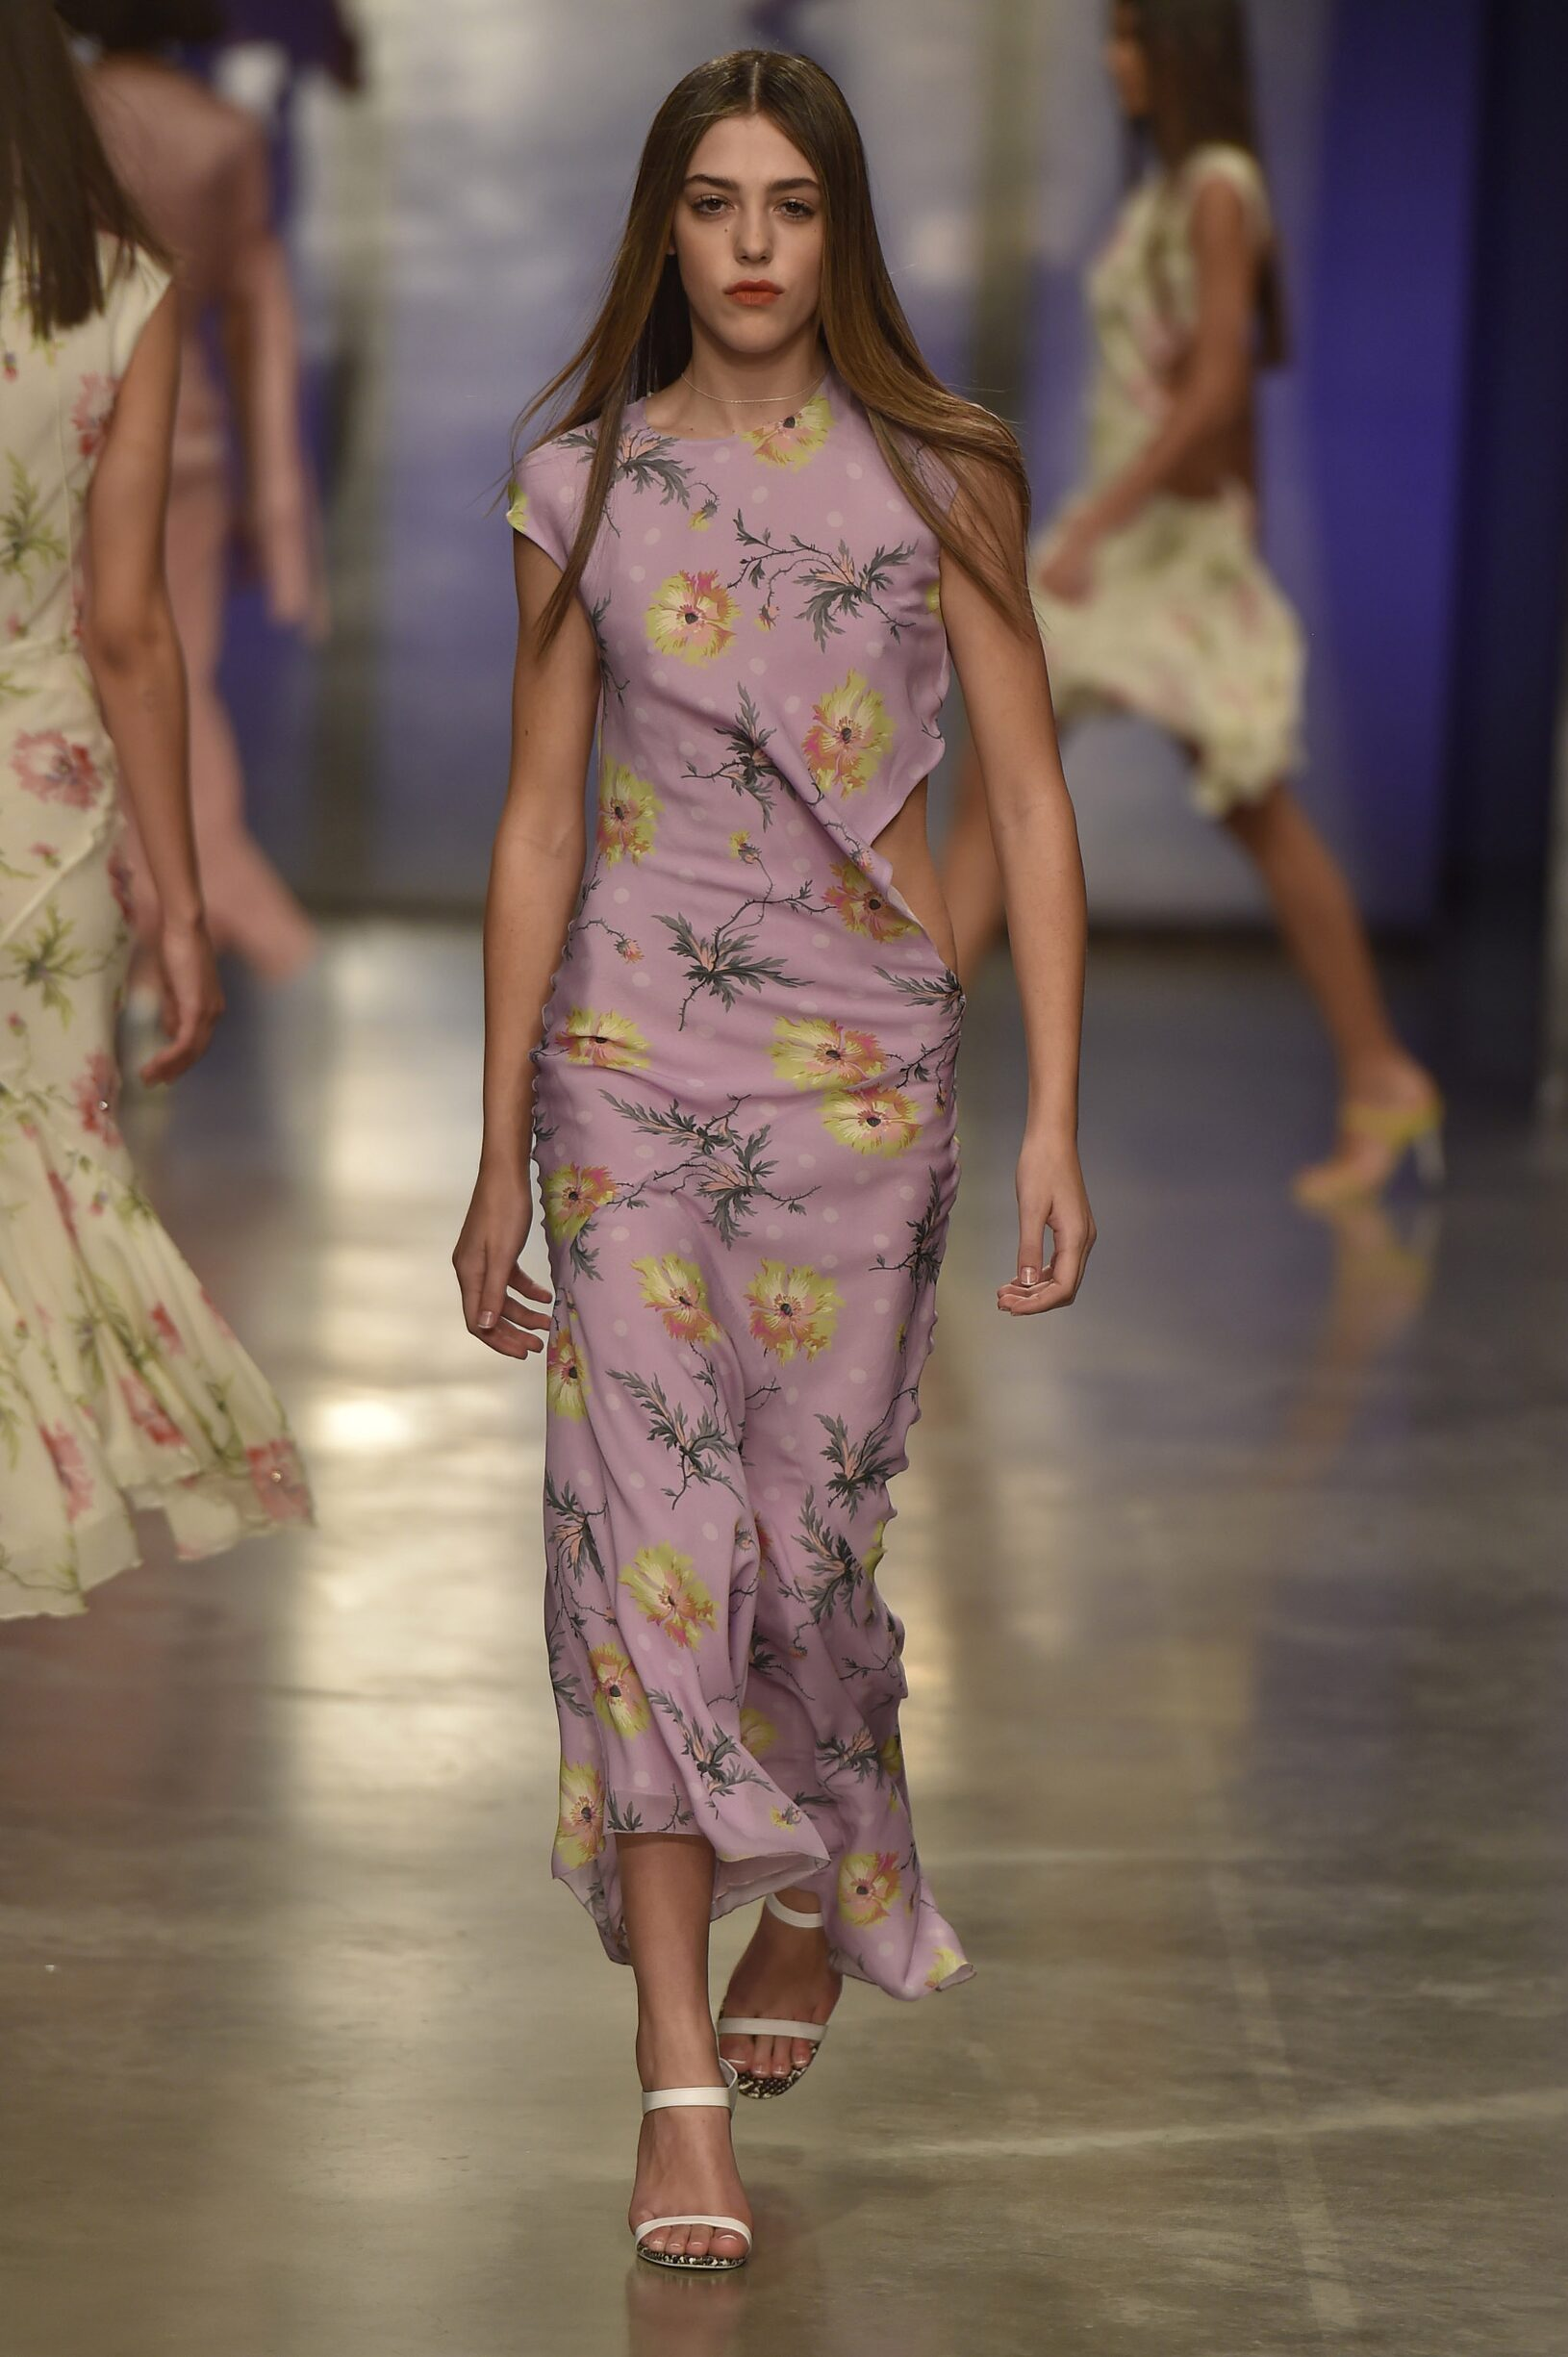 2017 Topshop Unique Catwalk